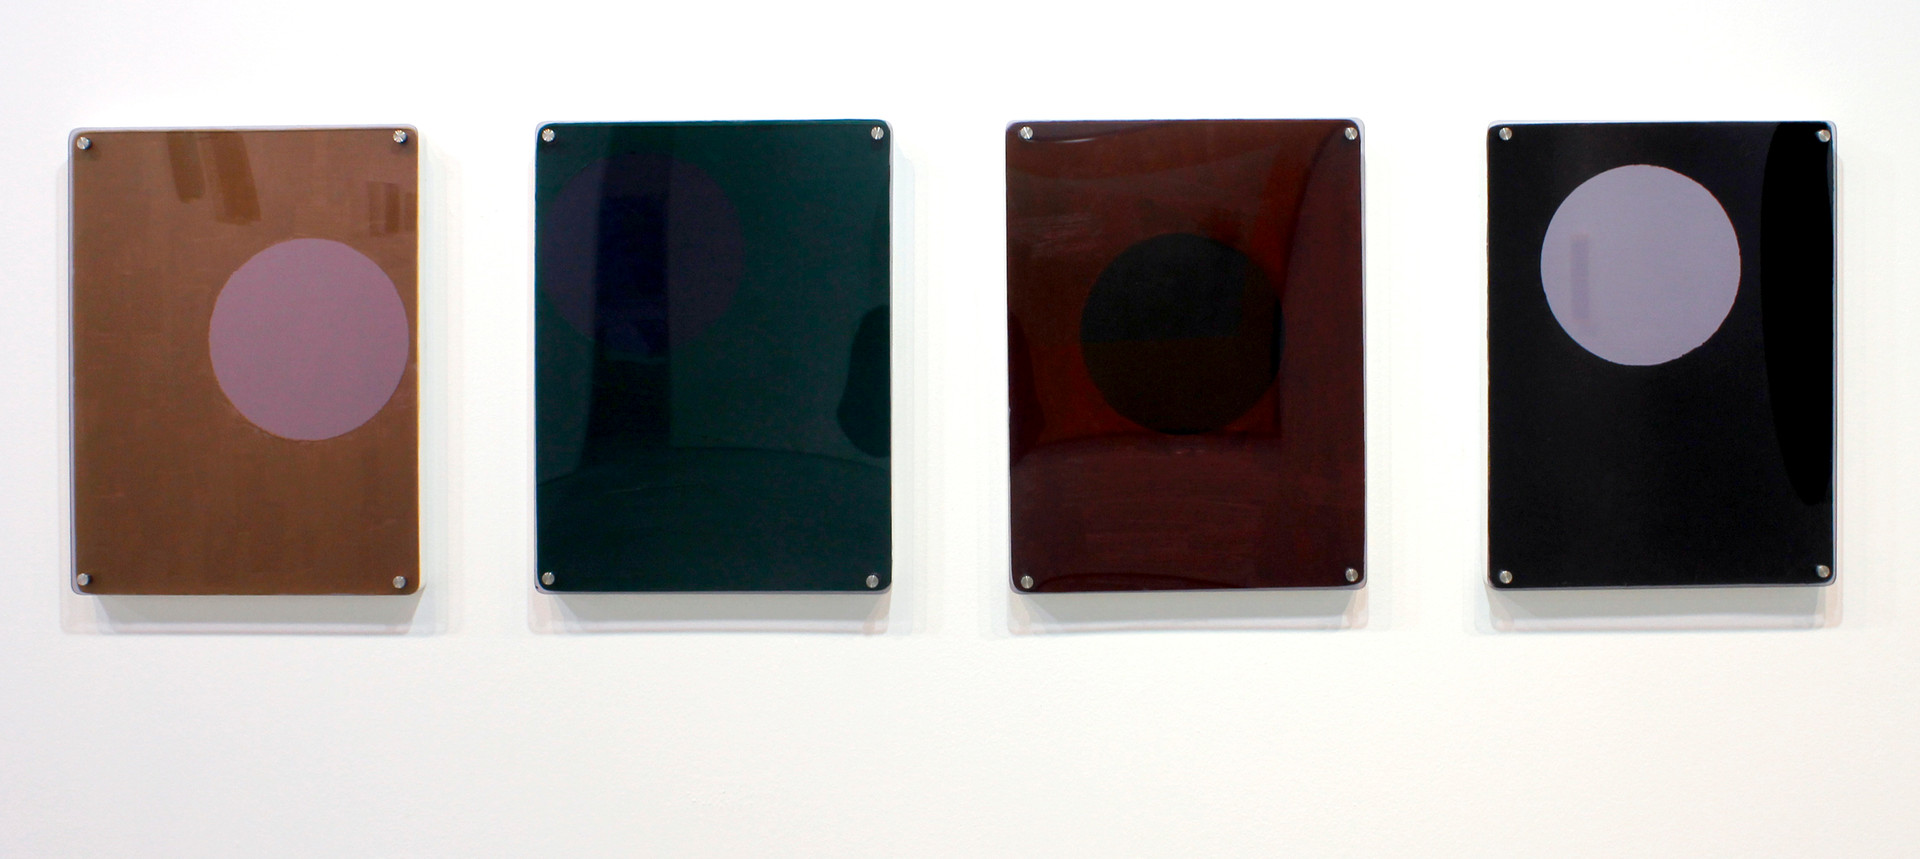 Helen A. Pritchard | Untitled - Carrier 26, 27, 28, 29 | 2013 | Oil and Pigment on Board with Perspex | 40 x 30 cm Each